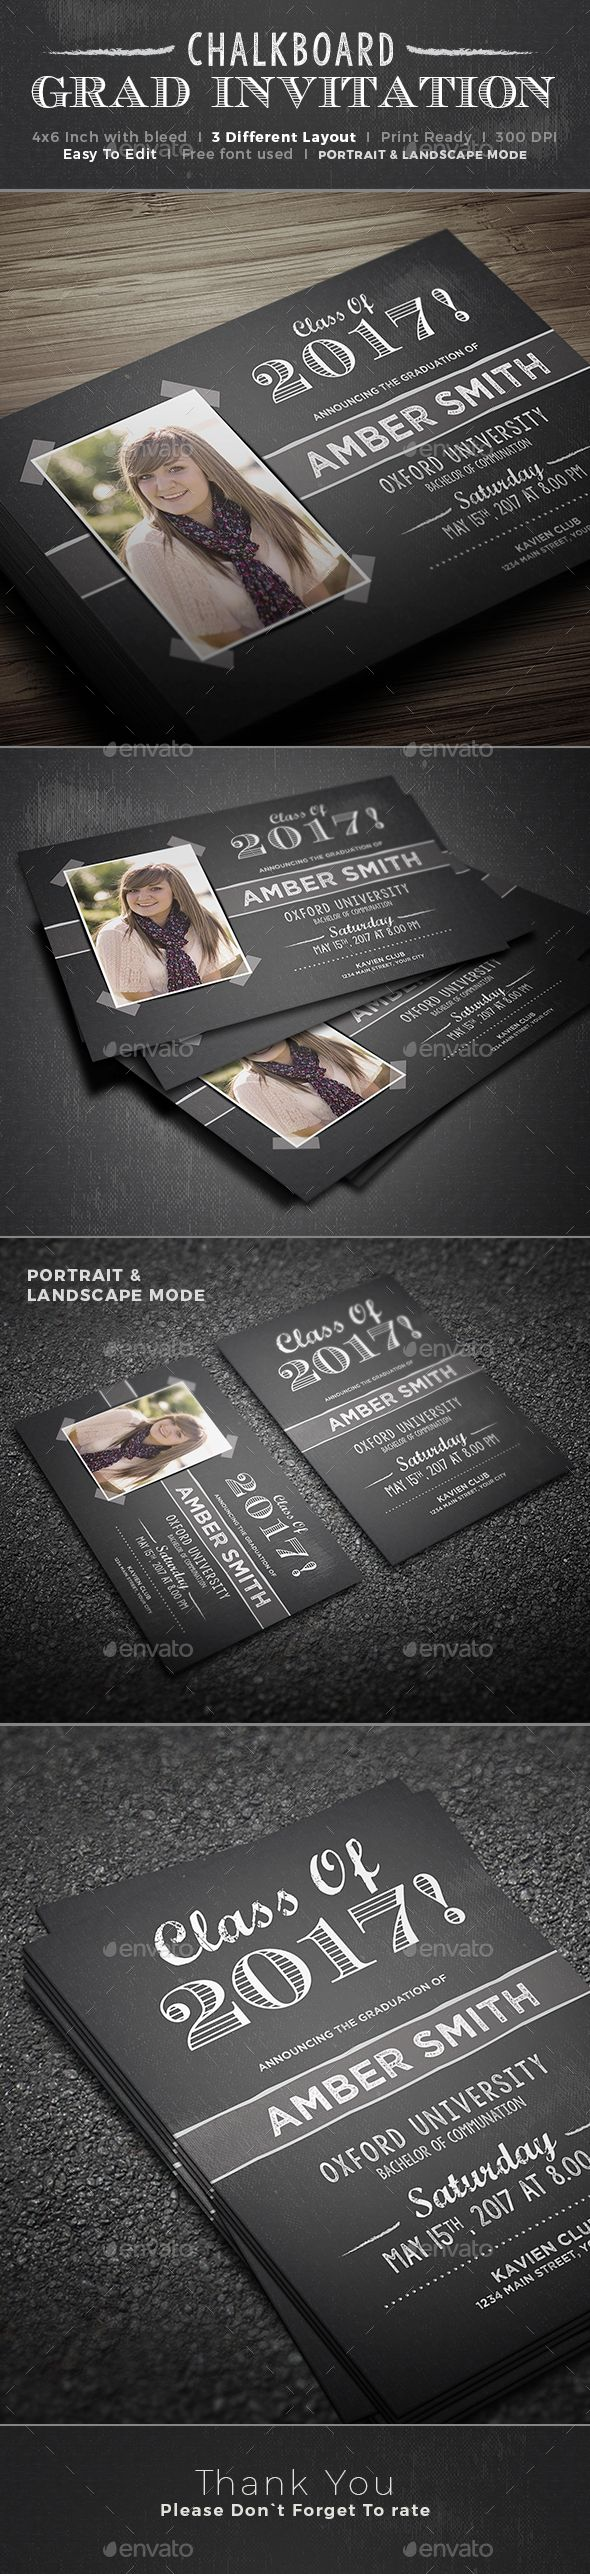 Graduation Invitation Template PSD. Download here: http://graphicriver.net/item/graduation-invitation/16071131?ref=ksioks